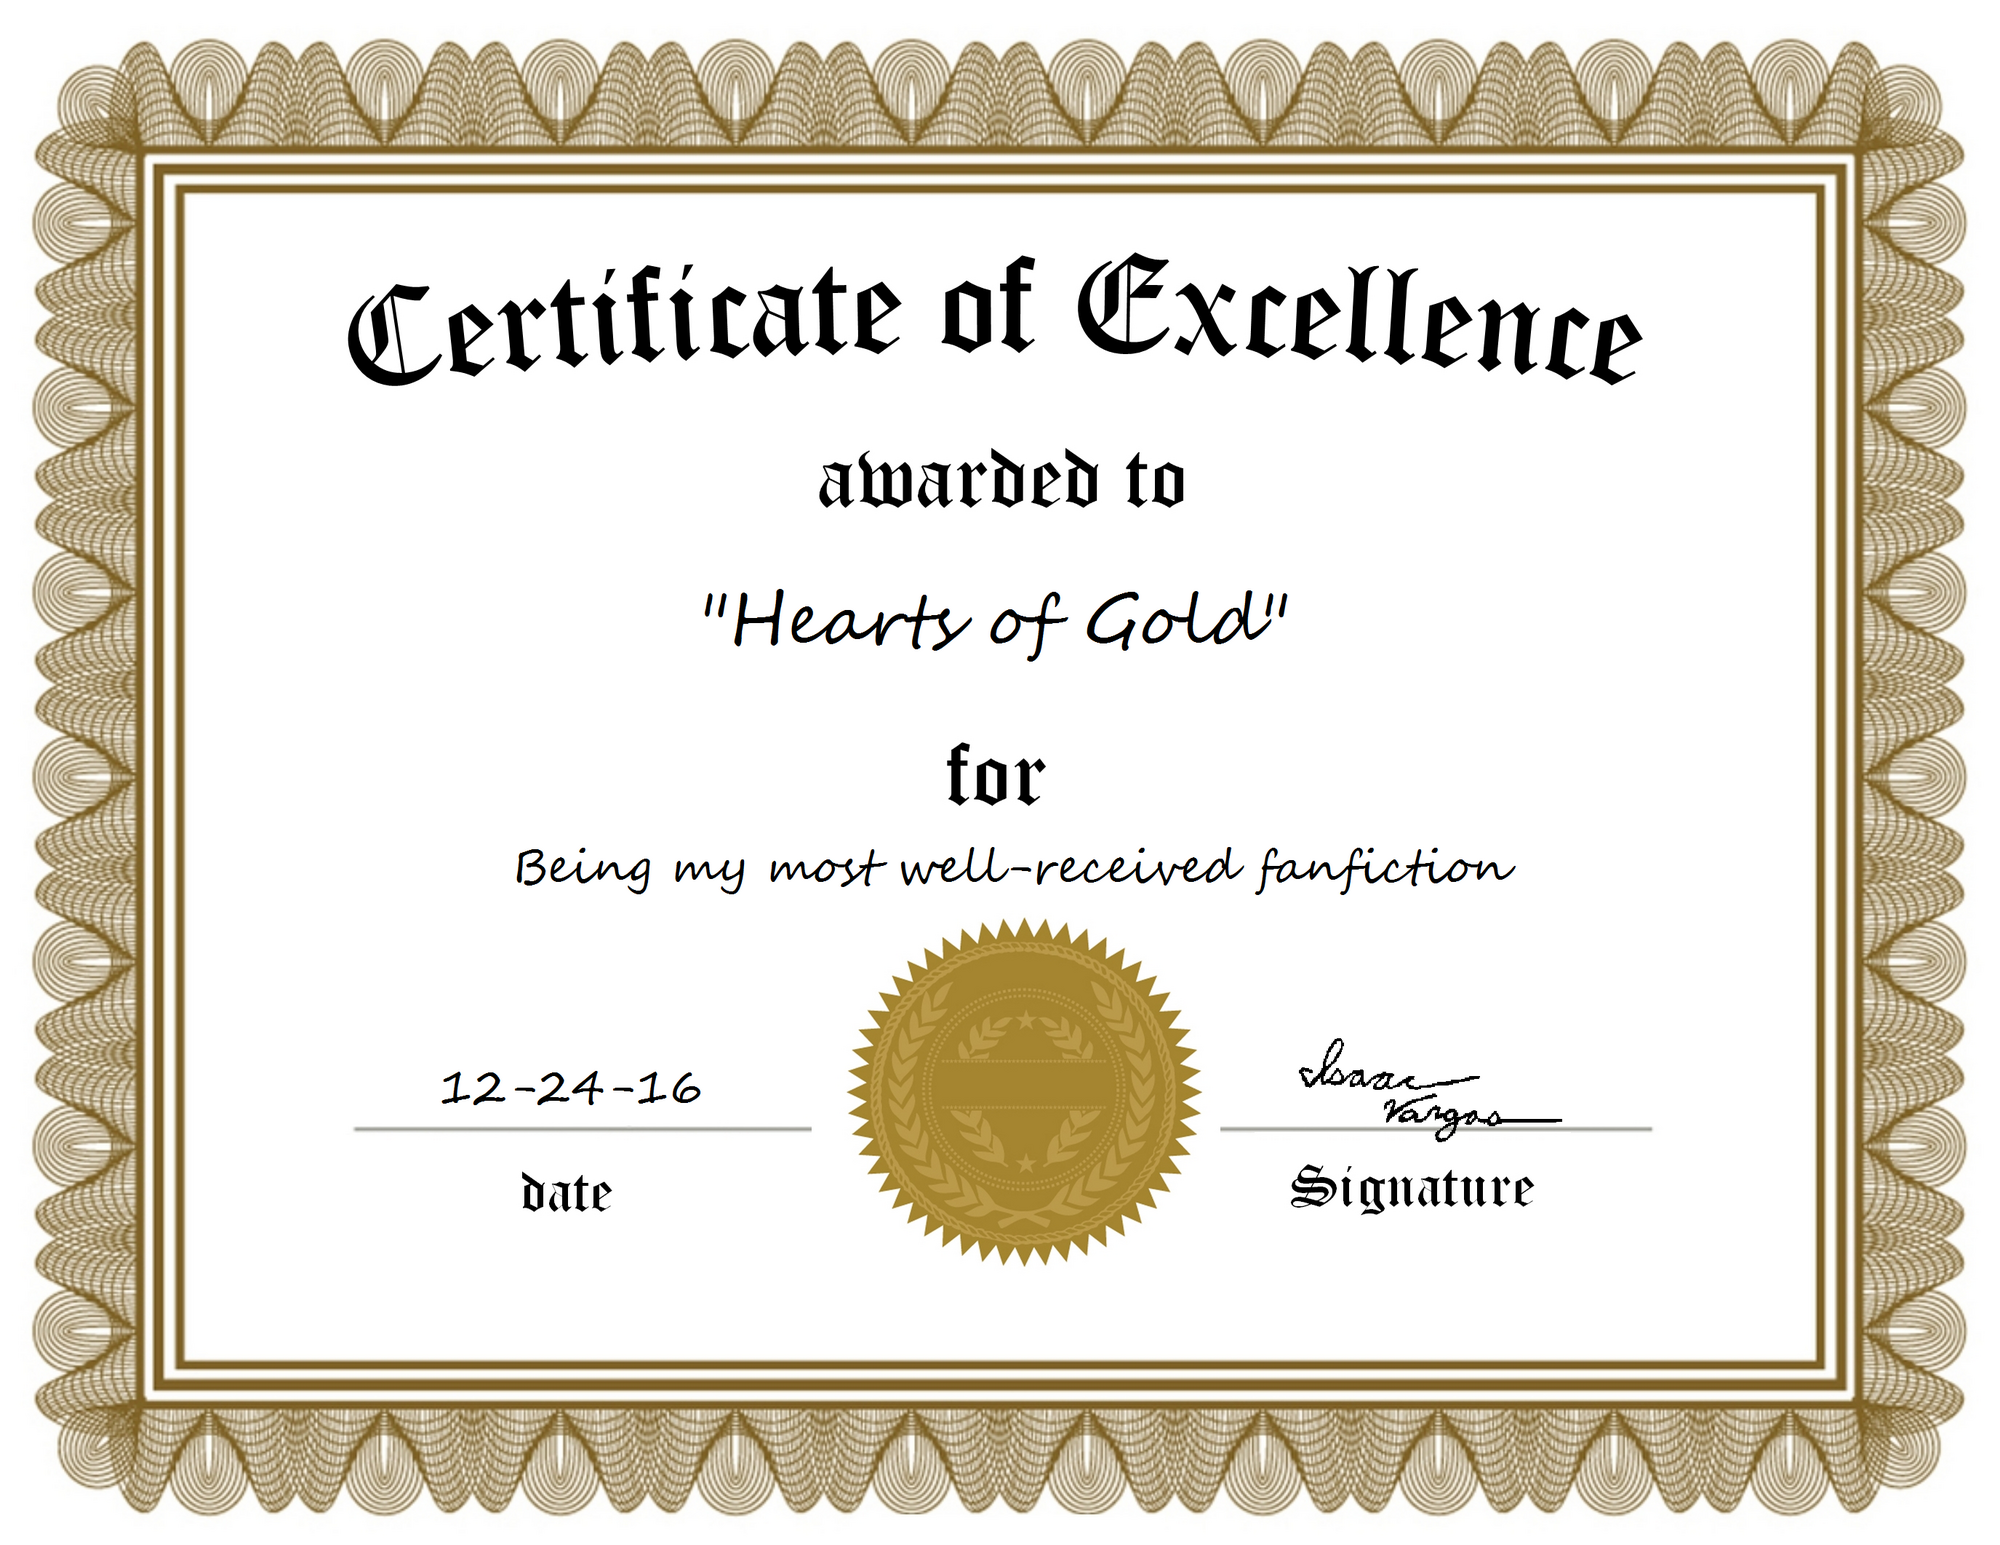 Publisher award certificate templates 28 images microsoft publisher award certificate templates image certificate of excellence hog png the loud house 1betcityfo Gallery